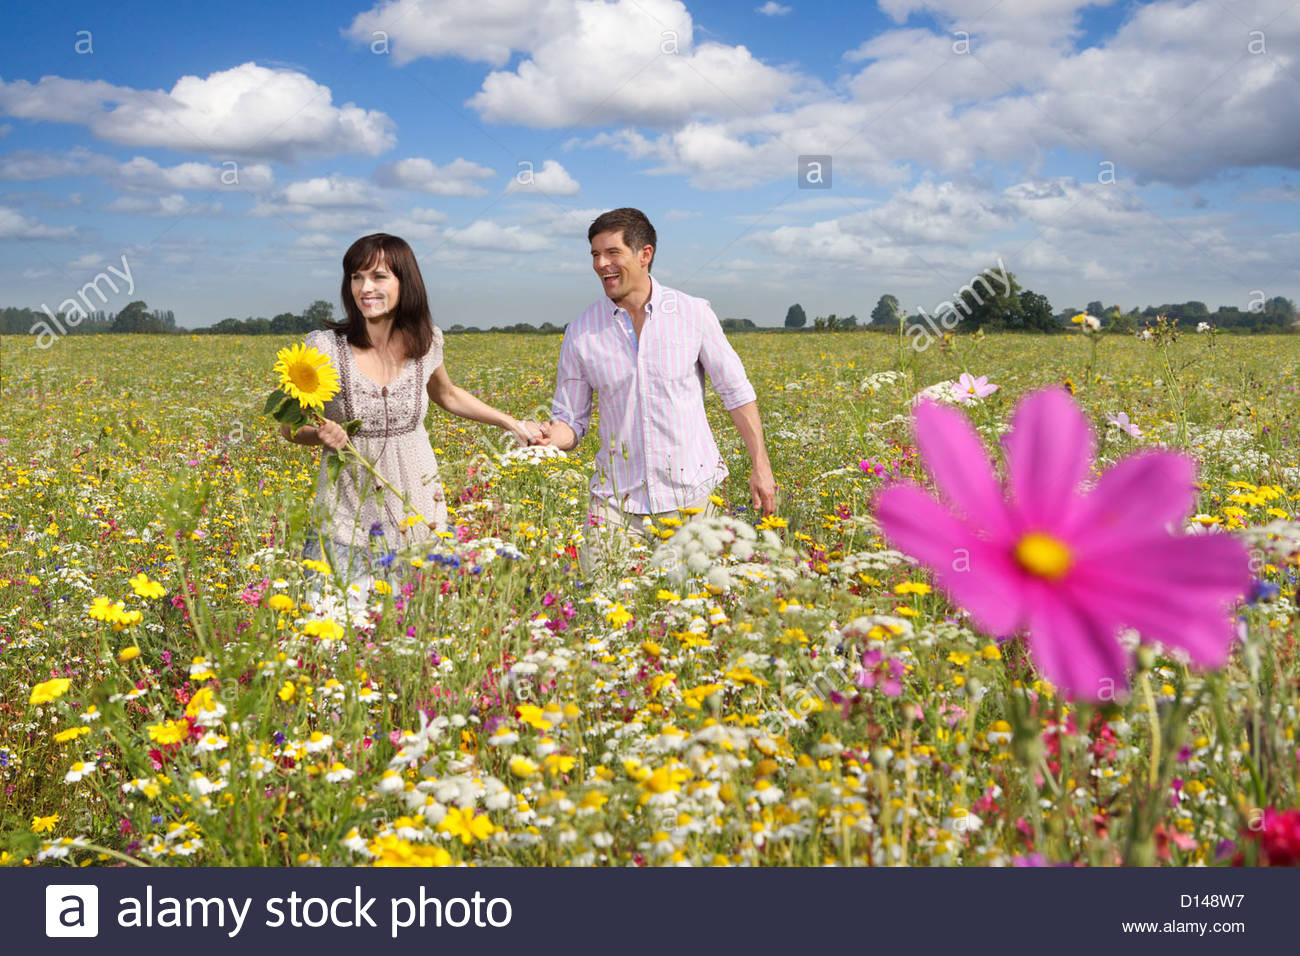 Smiling couple walking among wildflowers in sunny meadow - Stock Image